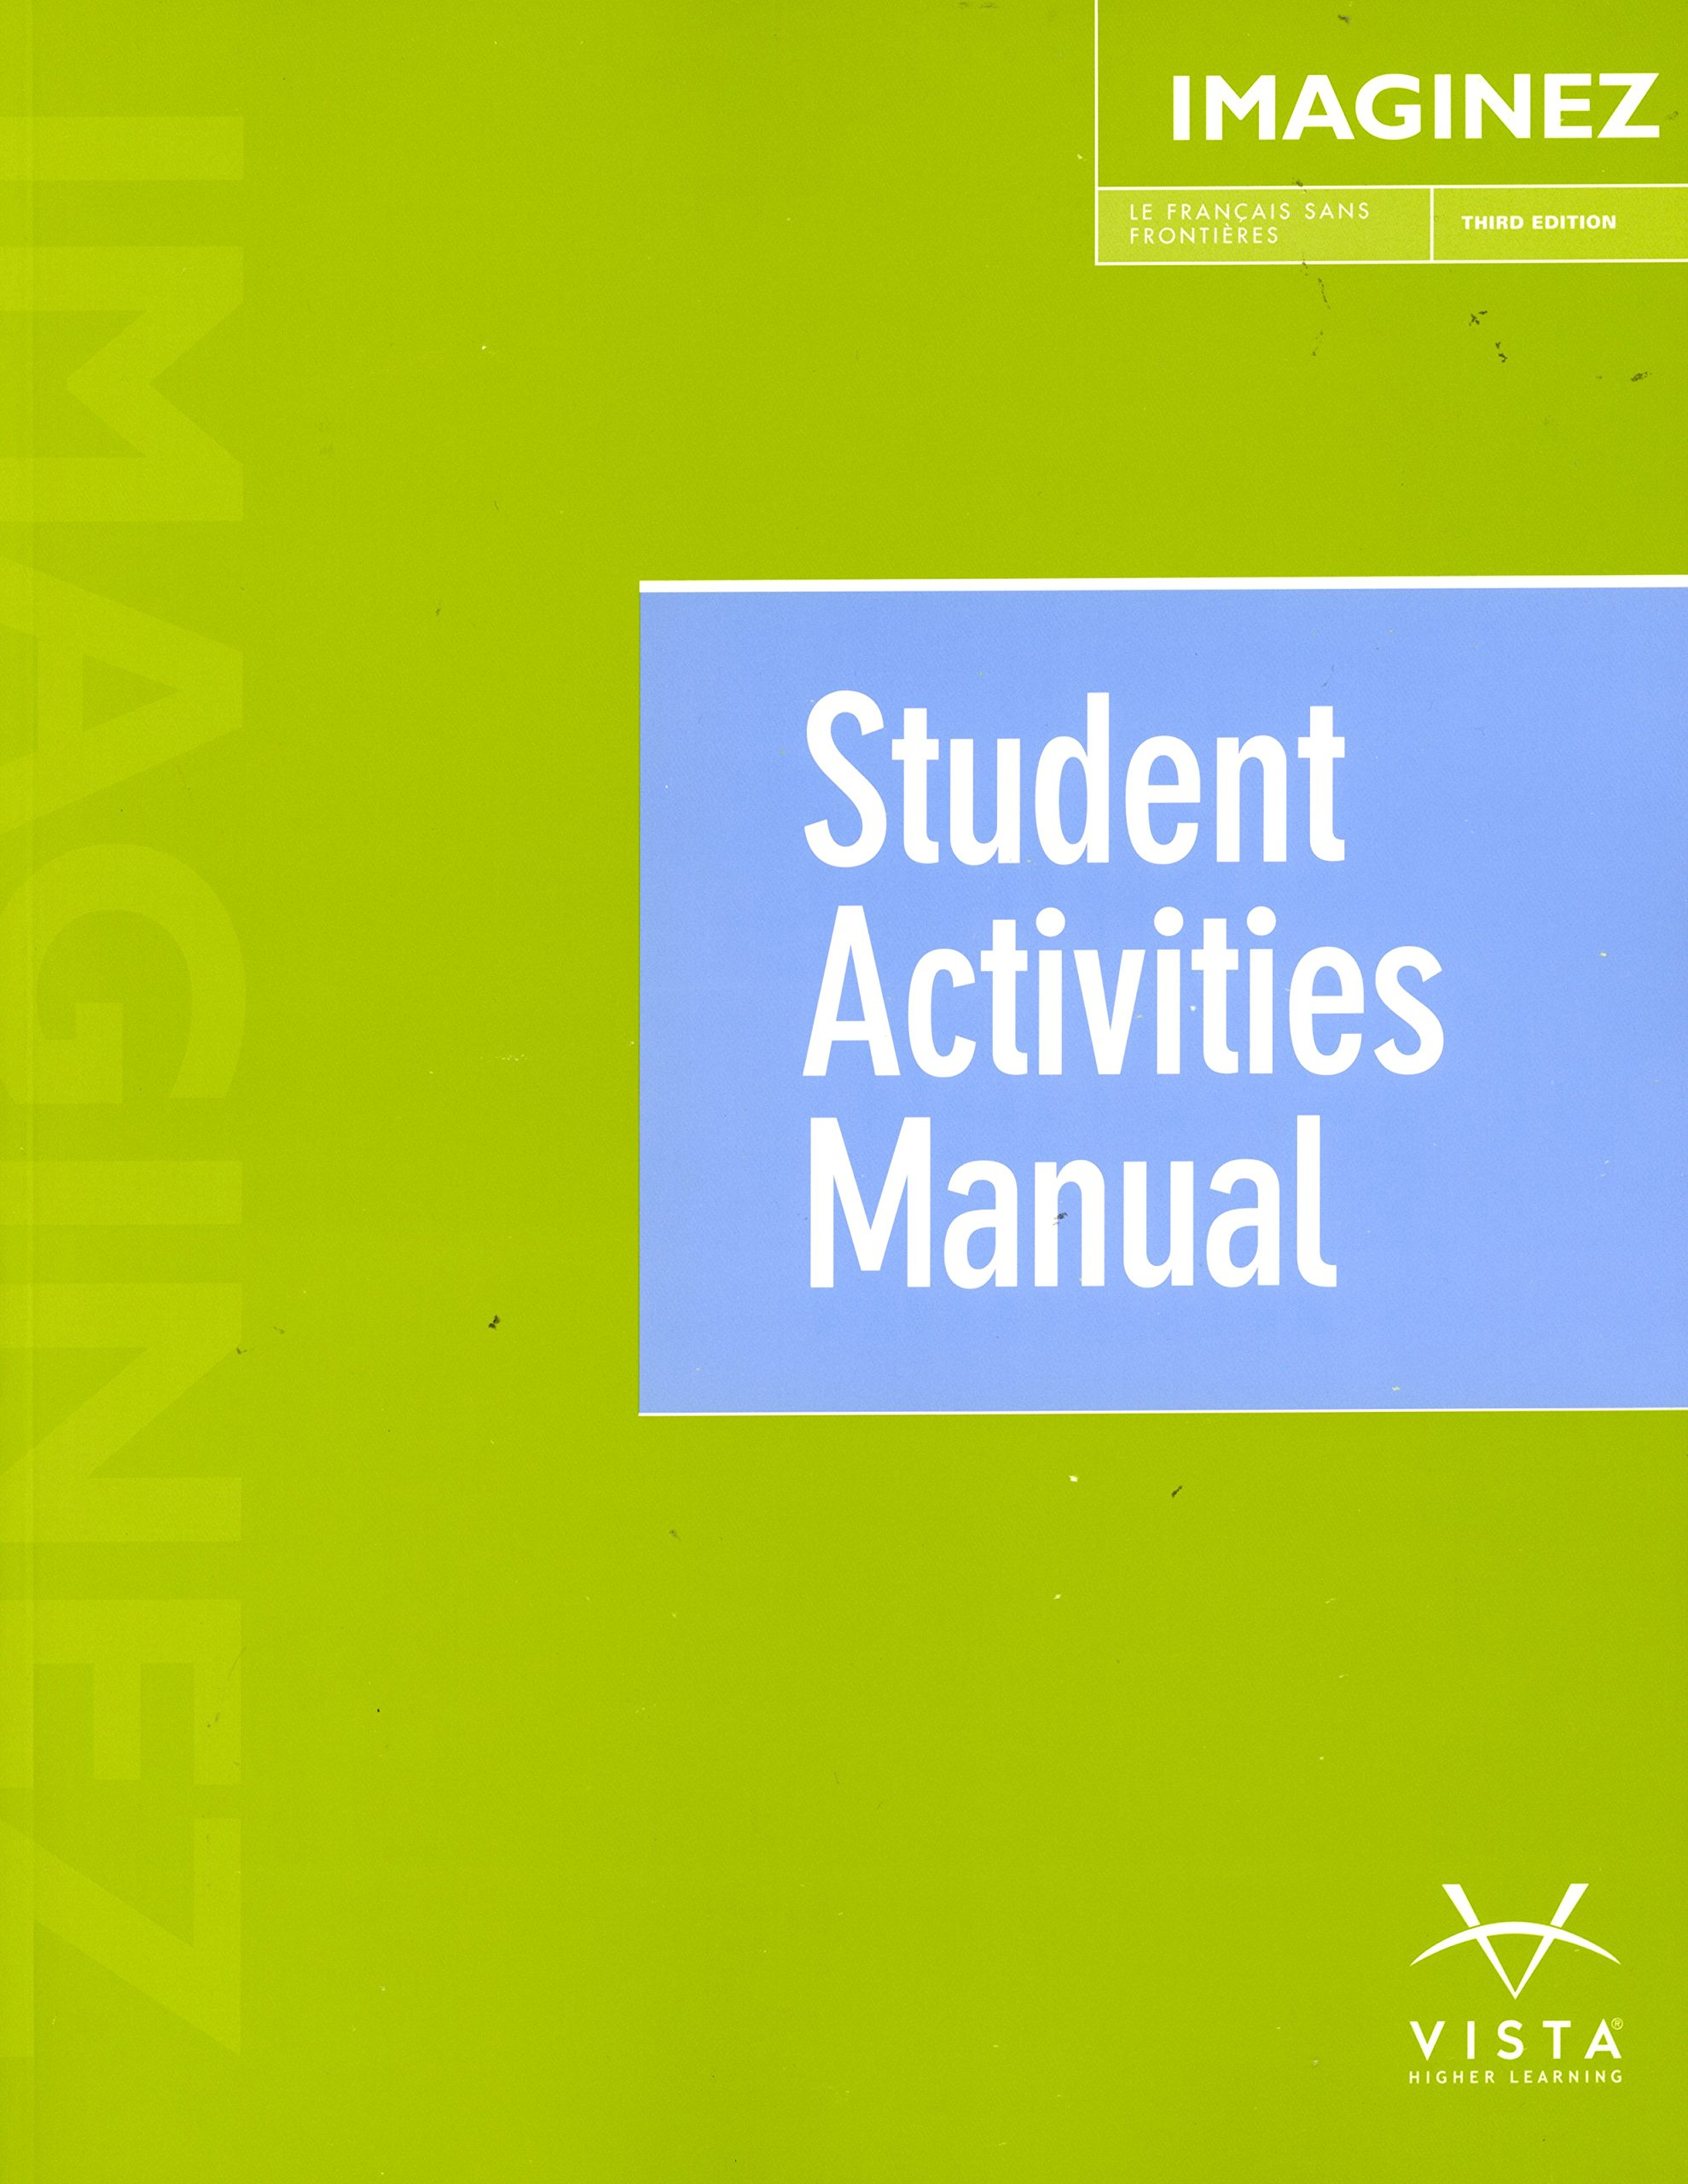 Imaginez, 3rd Ed, Student Activities Manual: vhl: 9781626808164:  Amazon.com: Books